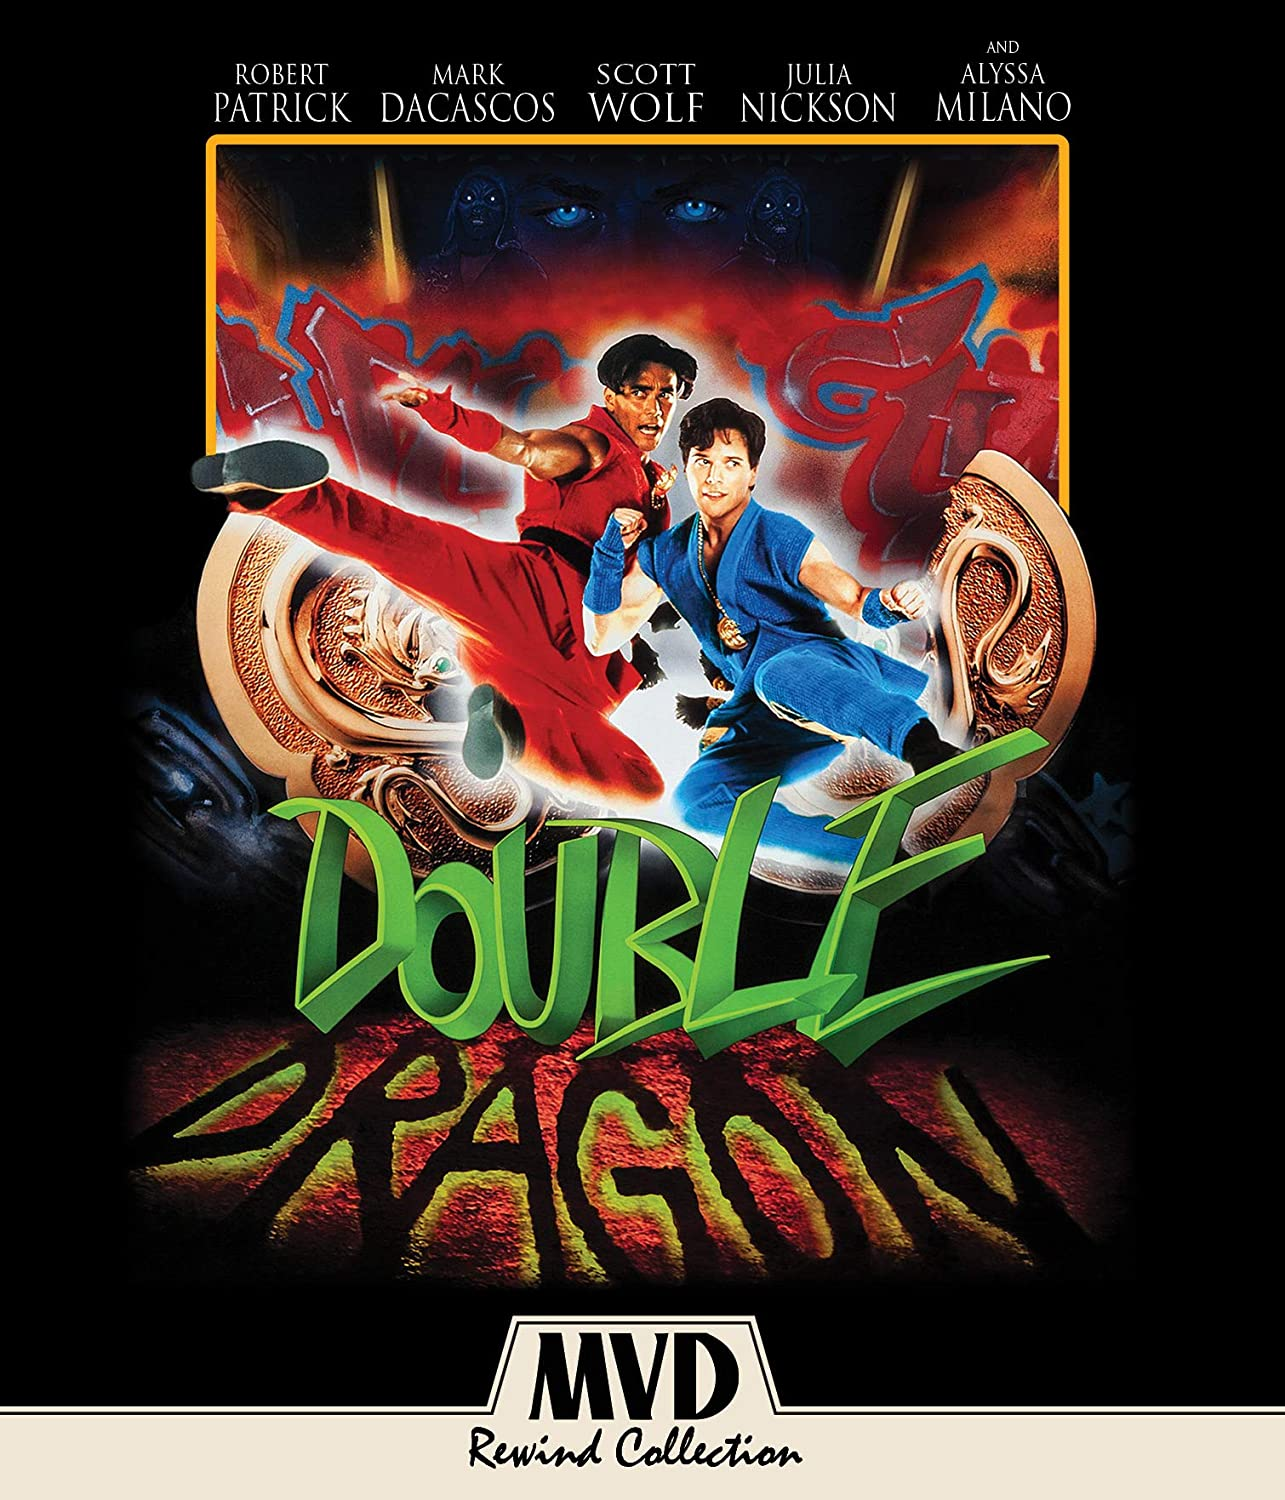 Amazon Com Double Dragon Blu Ray Scott Wolf Alyssa Milano Robert Patrick Mark Dacascos Julia Nickson Al Leong Michael Berryman Andy Dick James Yukich Movies Tv